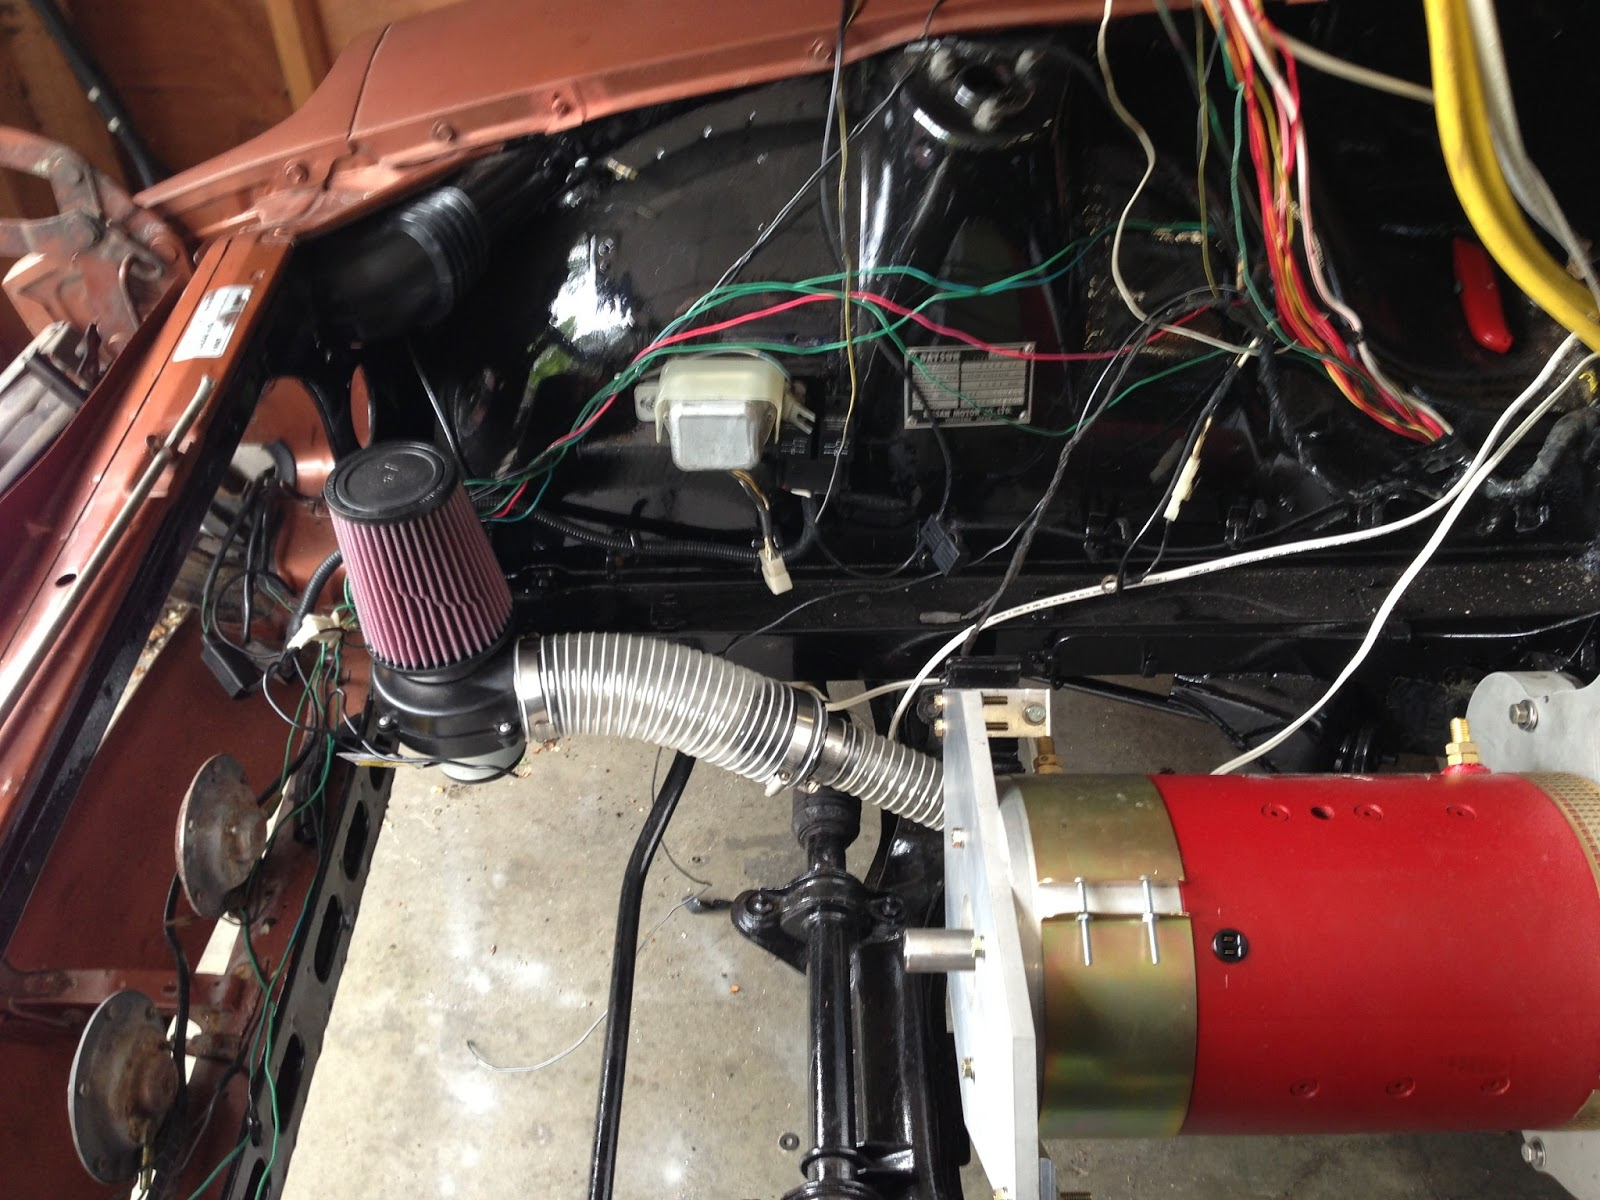 A 240z Becomes An Ev 2013 Electrical Wiring Drag Race As Well Some Thermal Protection For Racing This Blower System Consists Of Marine Bilge Shroud Designed Specifically The Motor